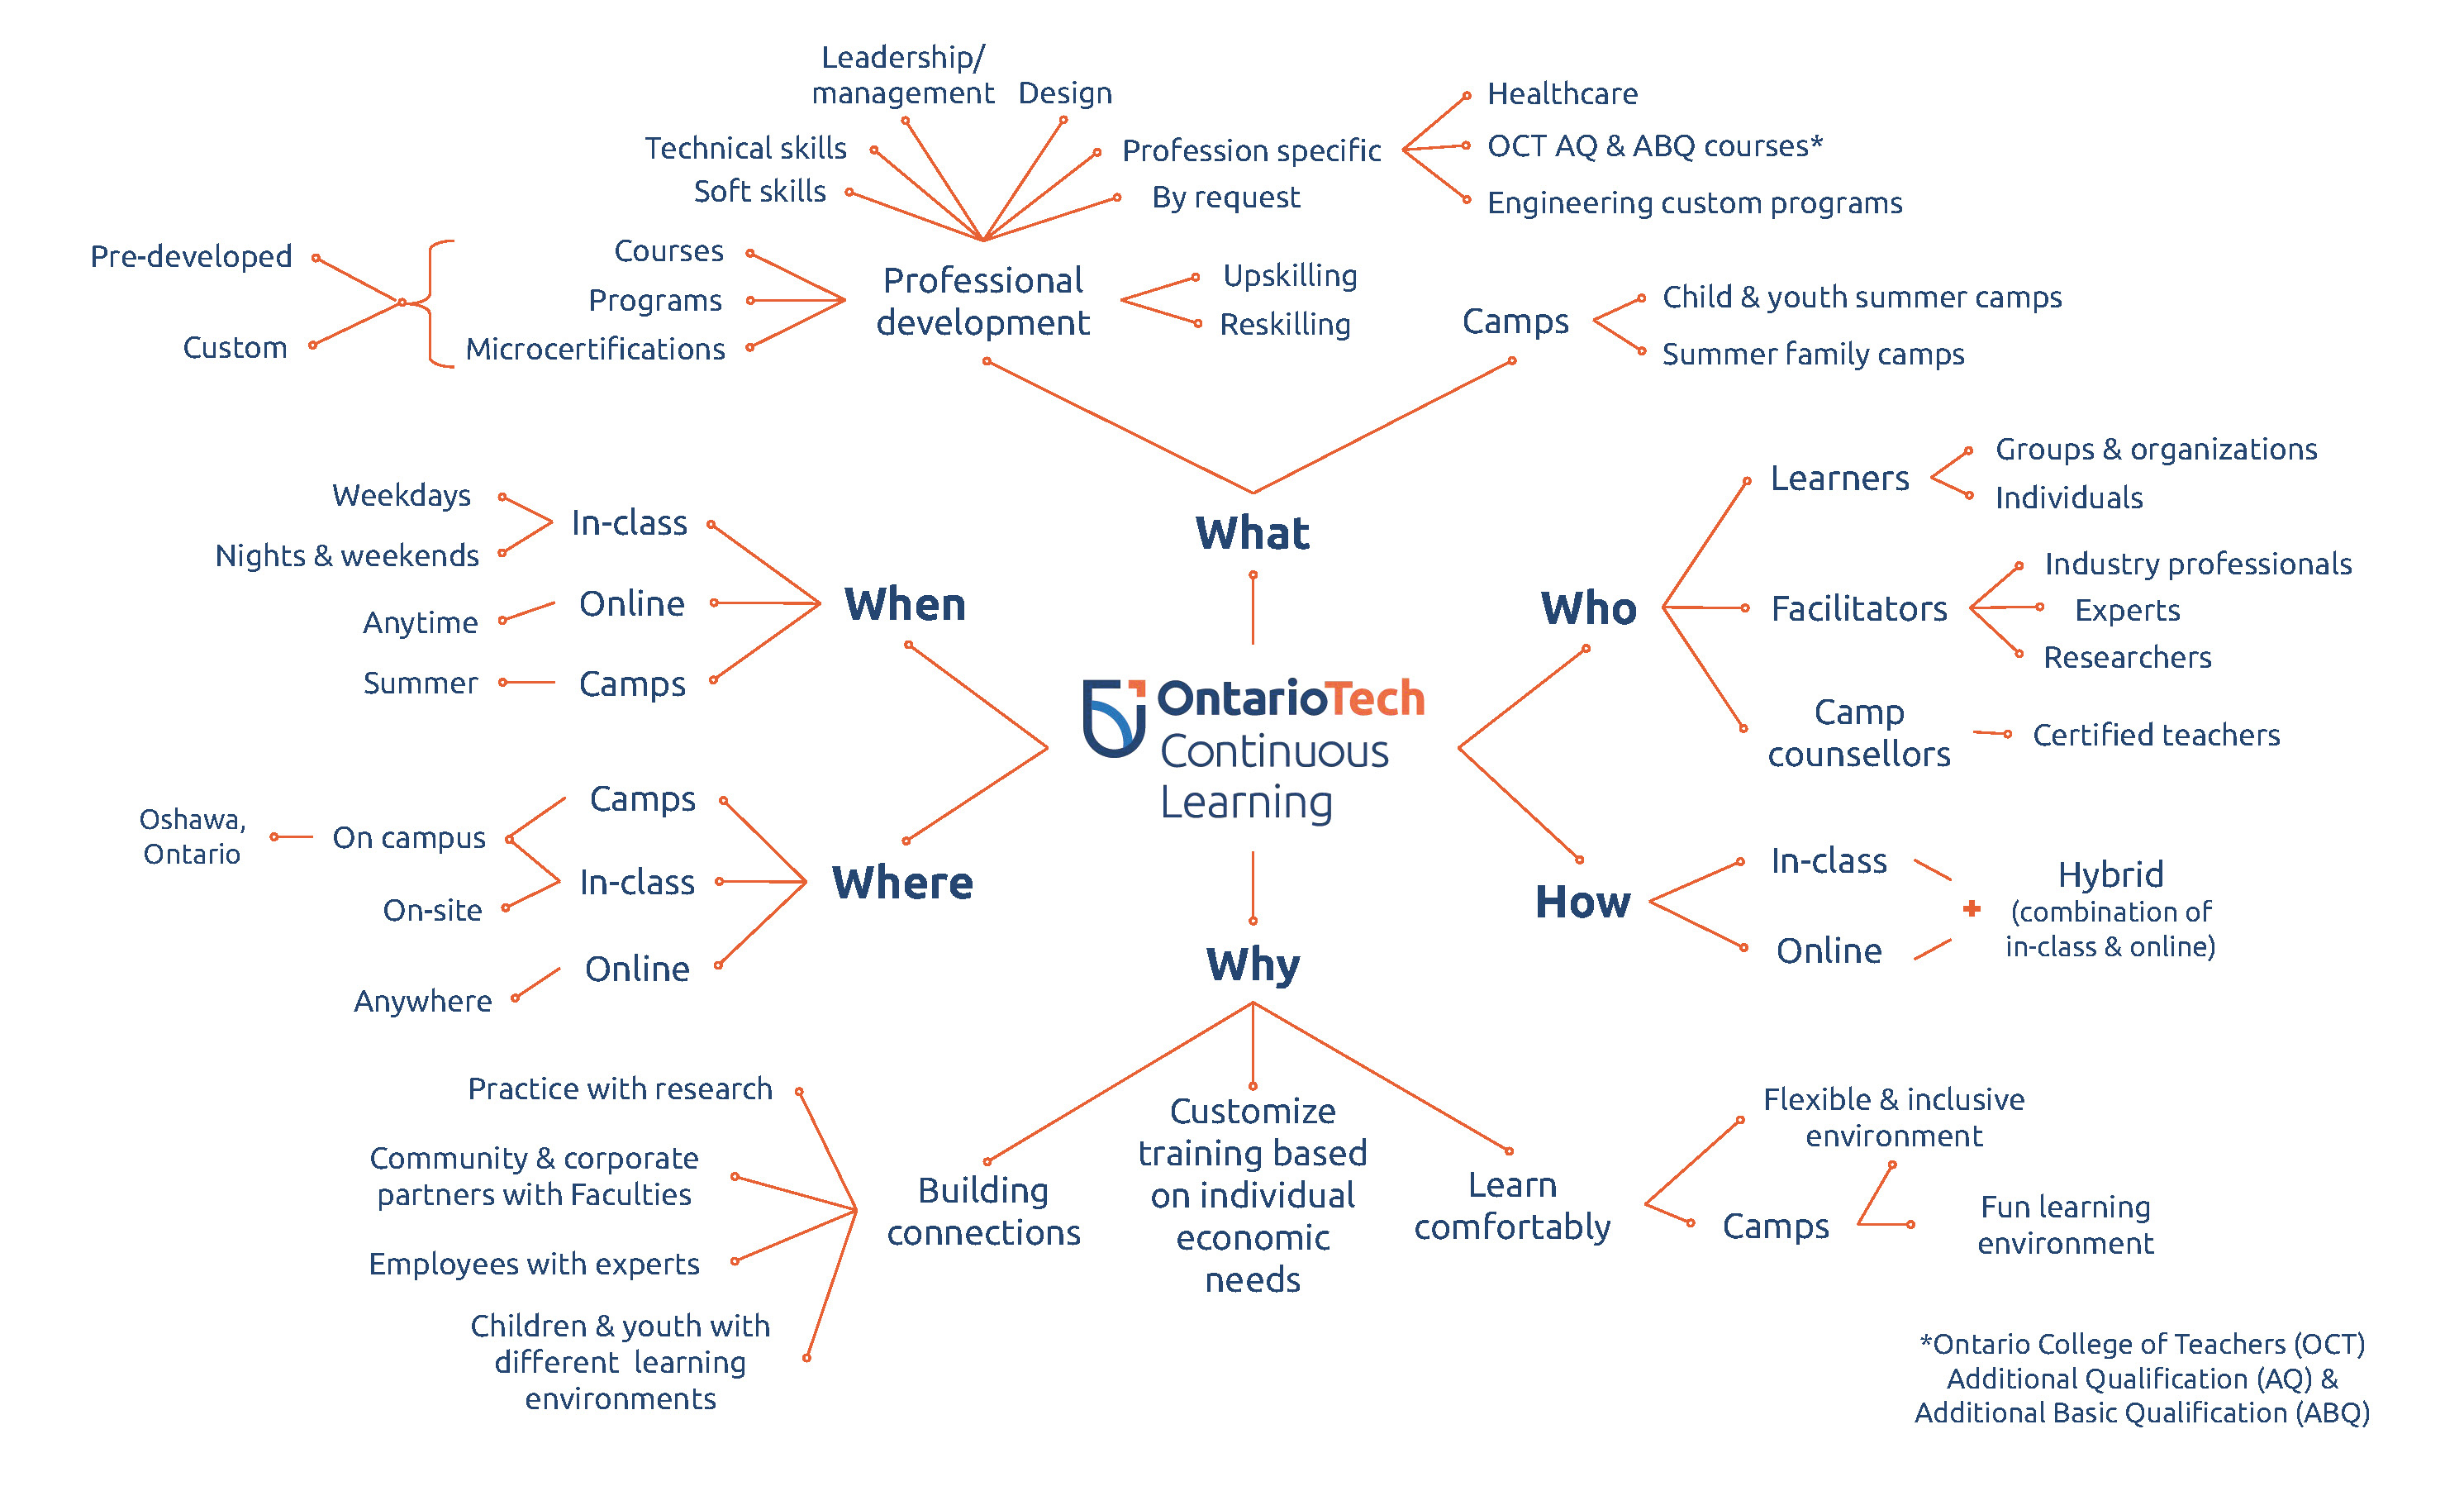 A mindmap of the who, what, when, where, why, and how of Continuous Learning